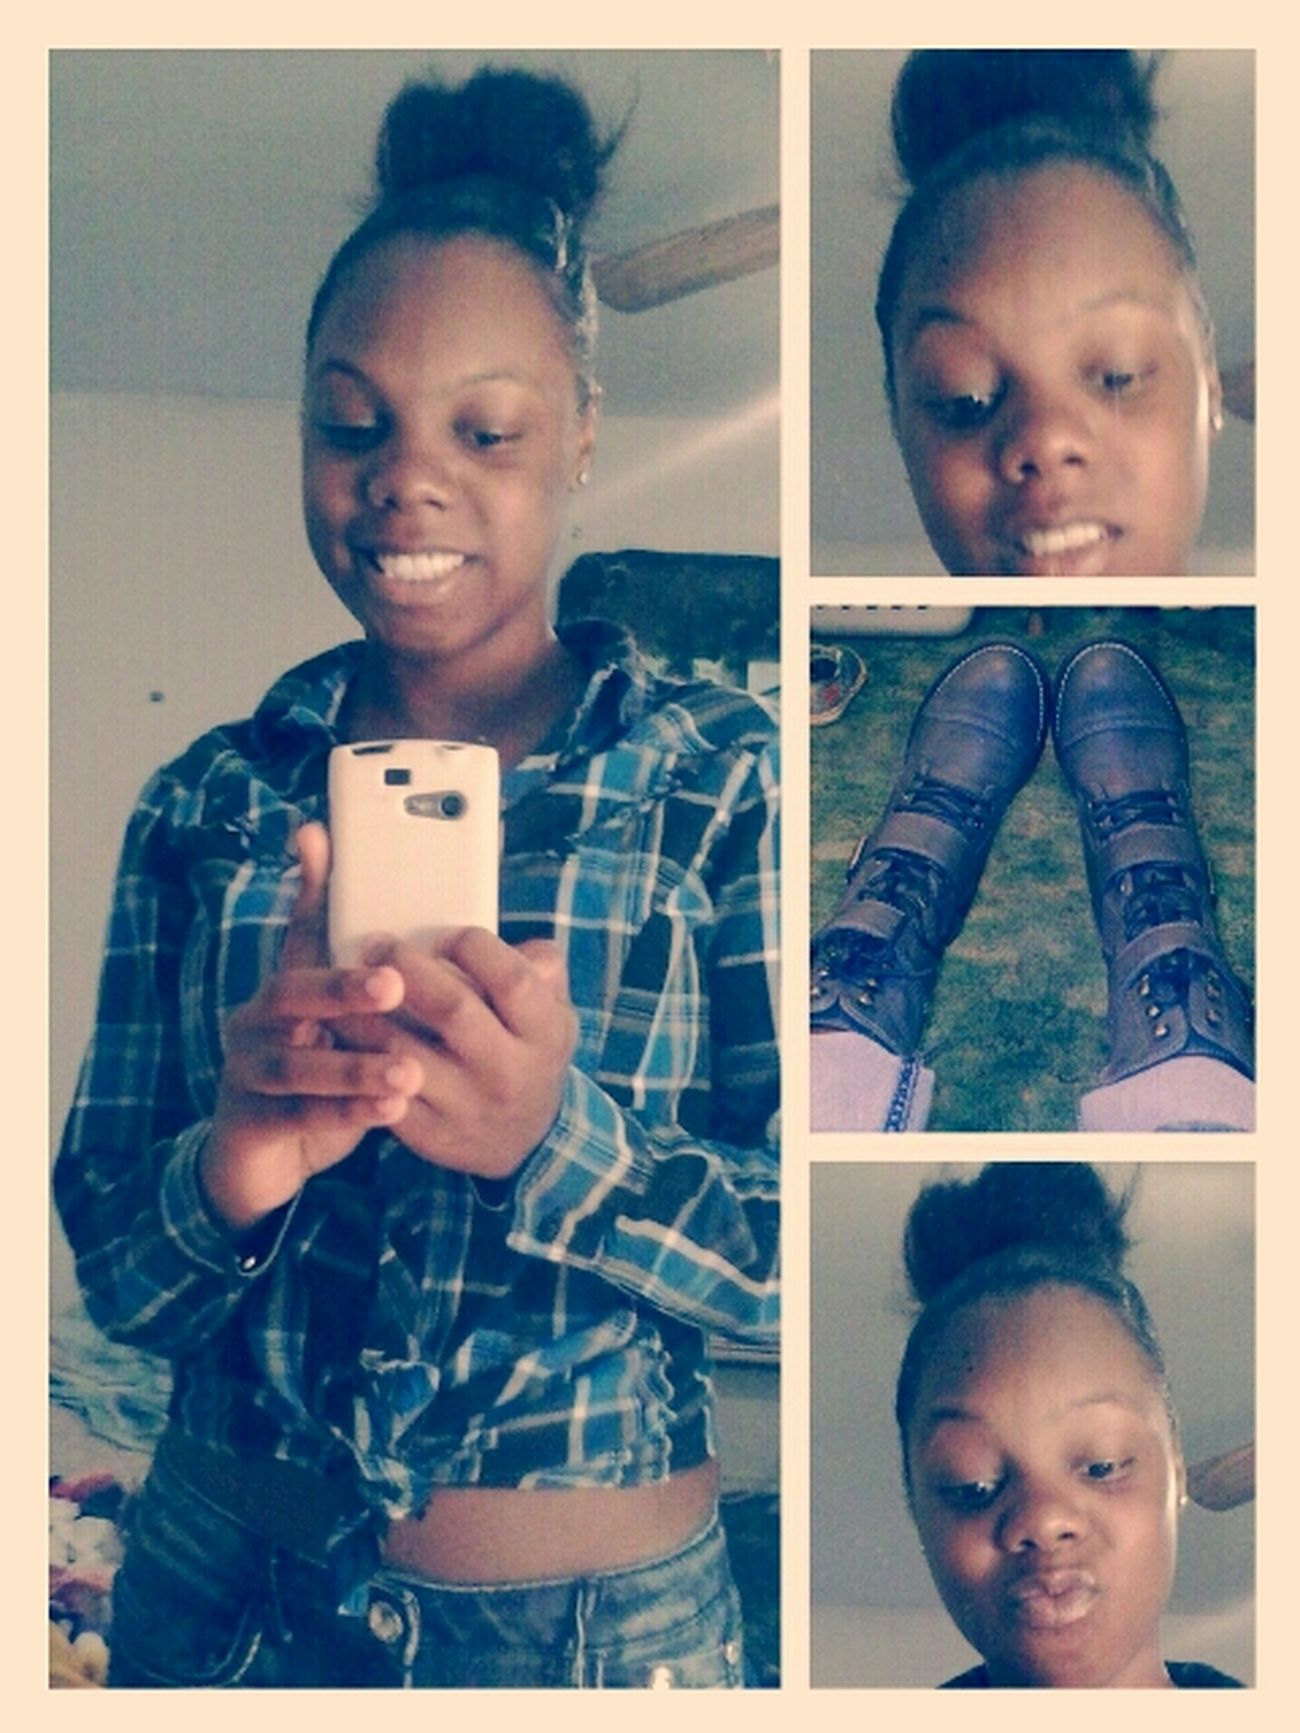 A boots girl.